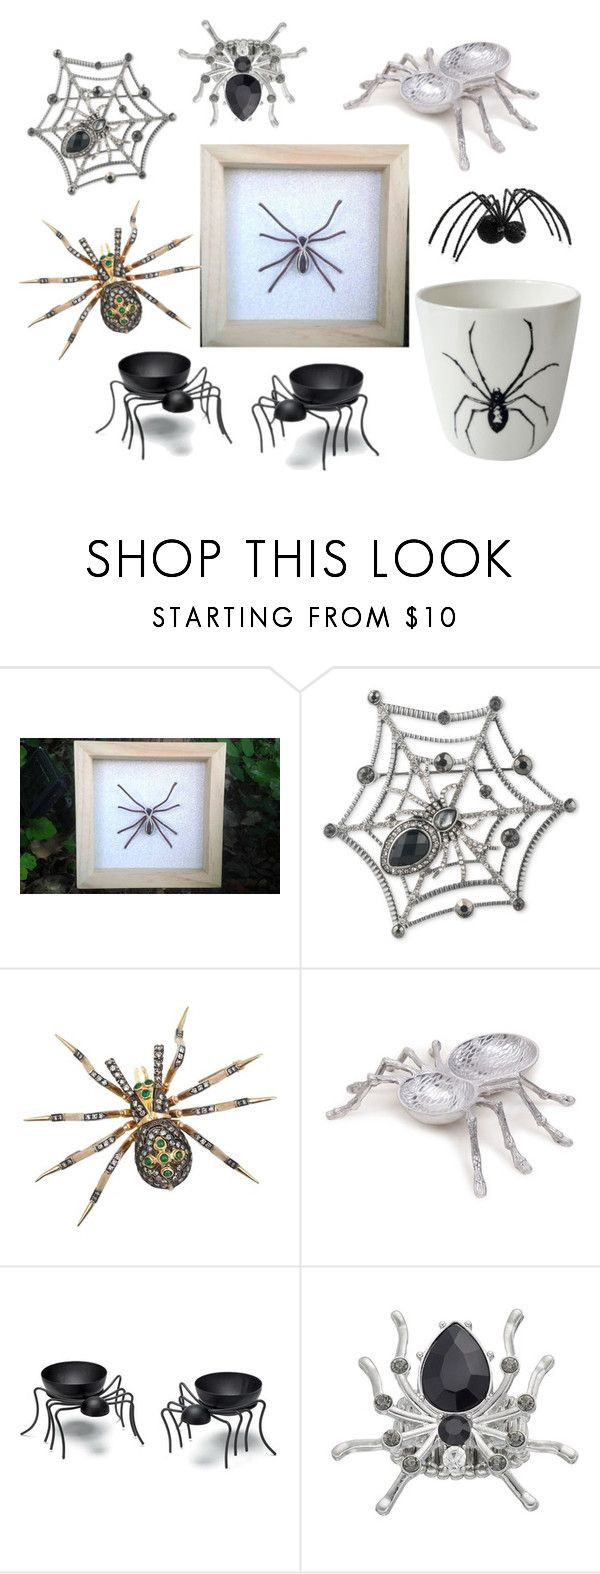 """""""Spiders everywhere!!"""" by monika-przymuszala ❤ liked on Polyvore featuring interior, interiors, interior design, home, home decor, interior decorating, Anne Klein, Elements, Avon and Pottery Barn"""